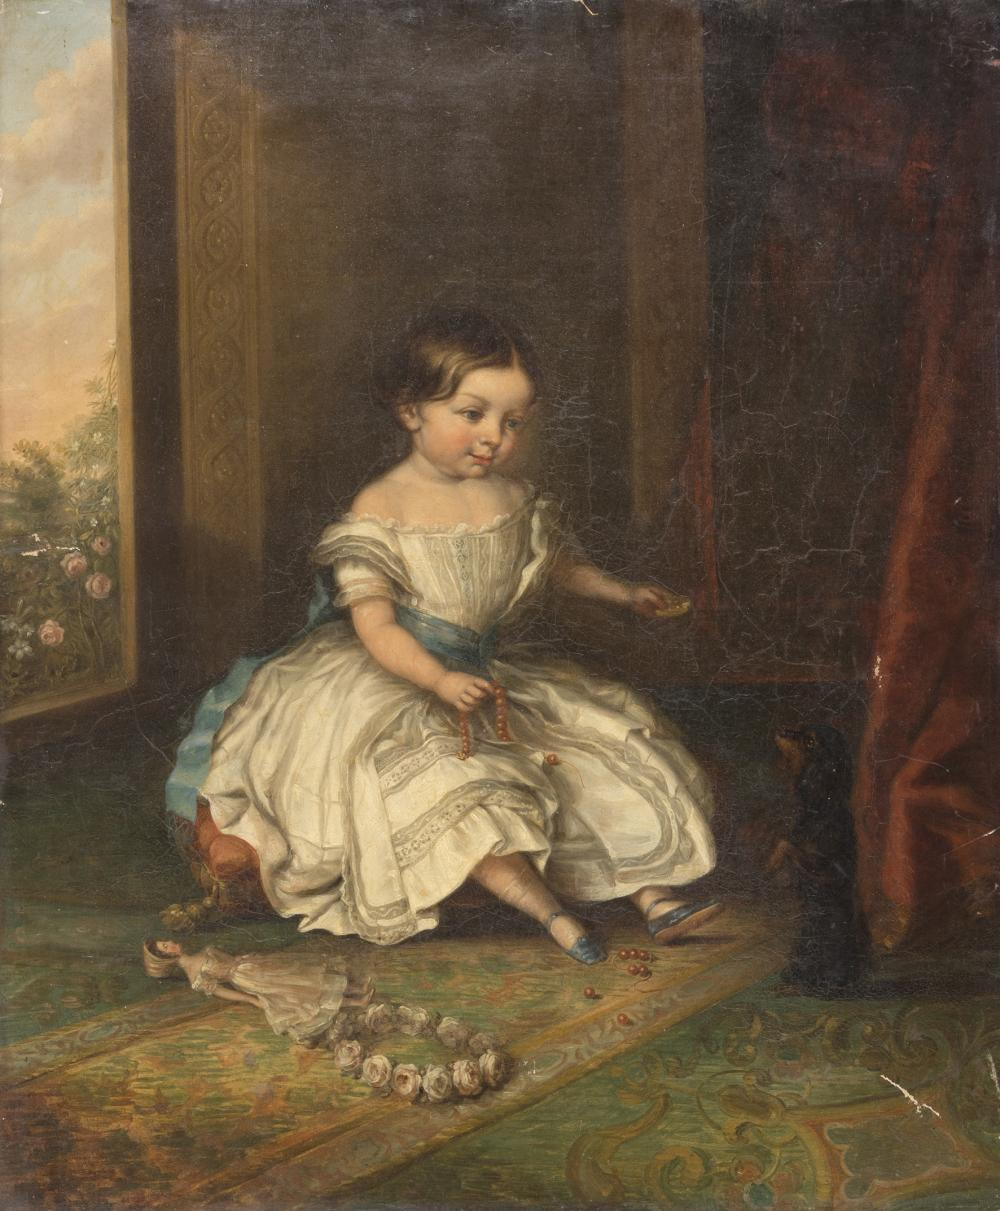 Lot 401: EUROPEAN PAINTER, 19TH CENTURY